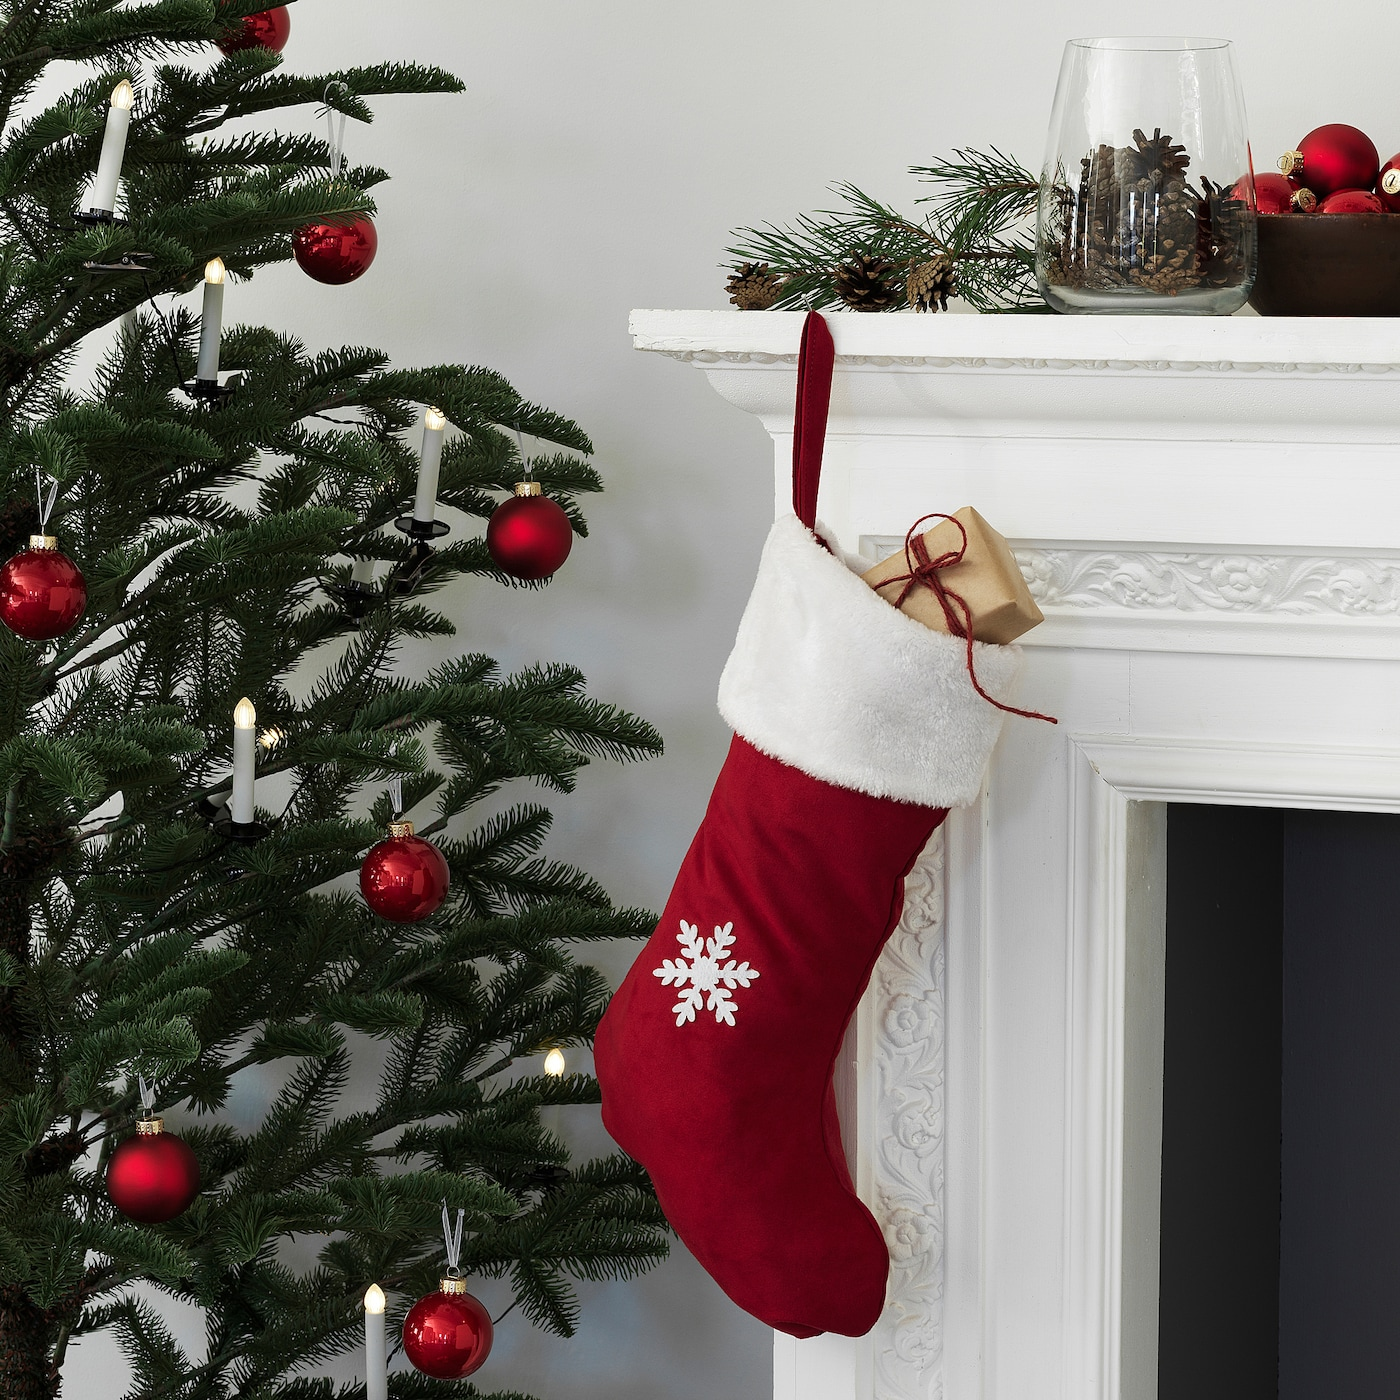 squarerooms-ikea-christmas-stockings